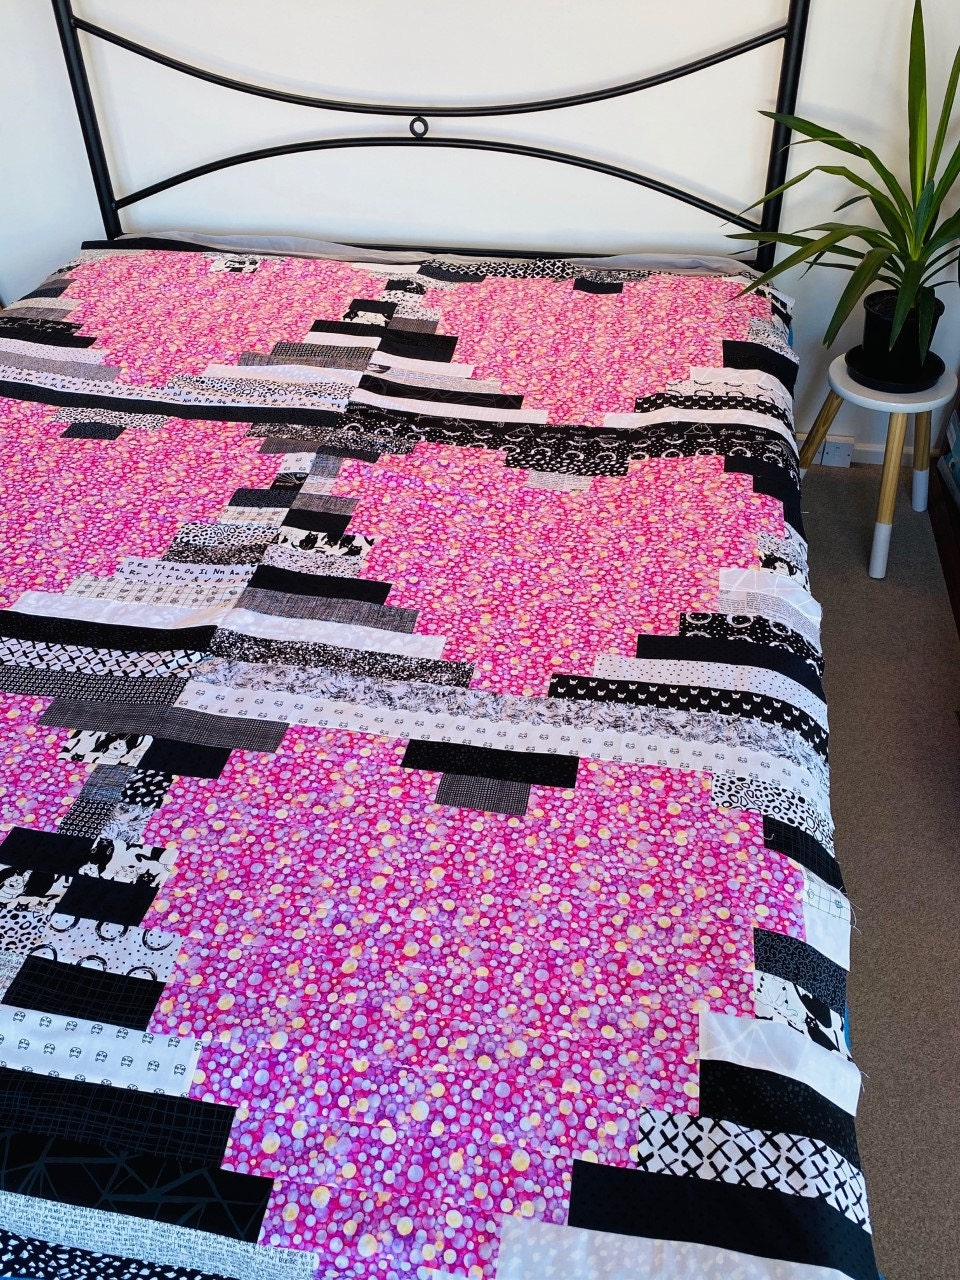 Photo of a Heart Quilt spread out over a bed. This quilt is called Heart Strings, by Alexa & Me.